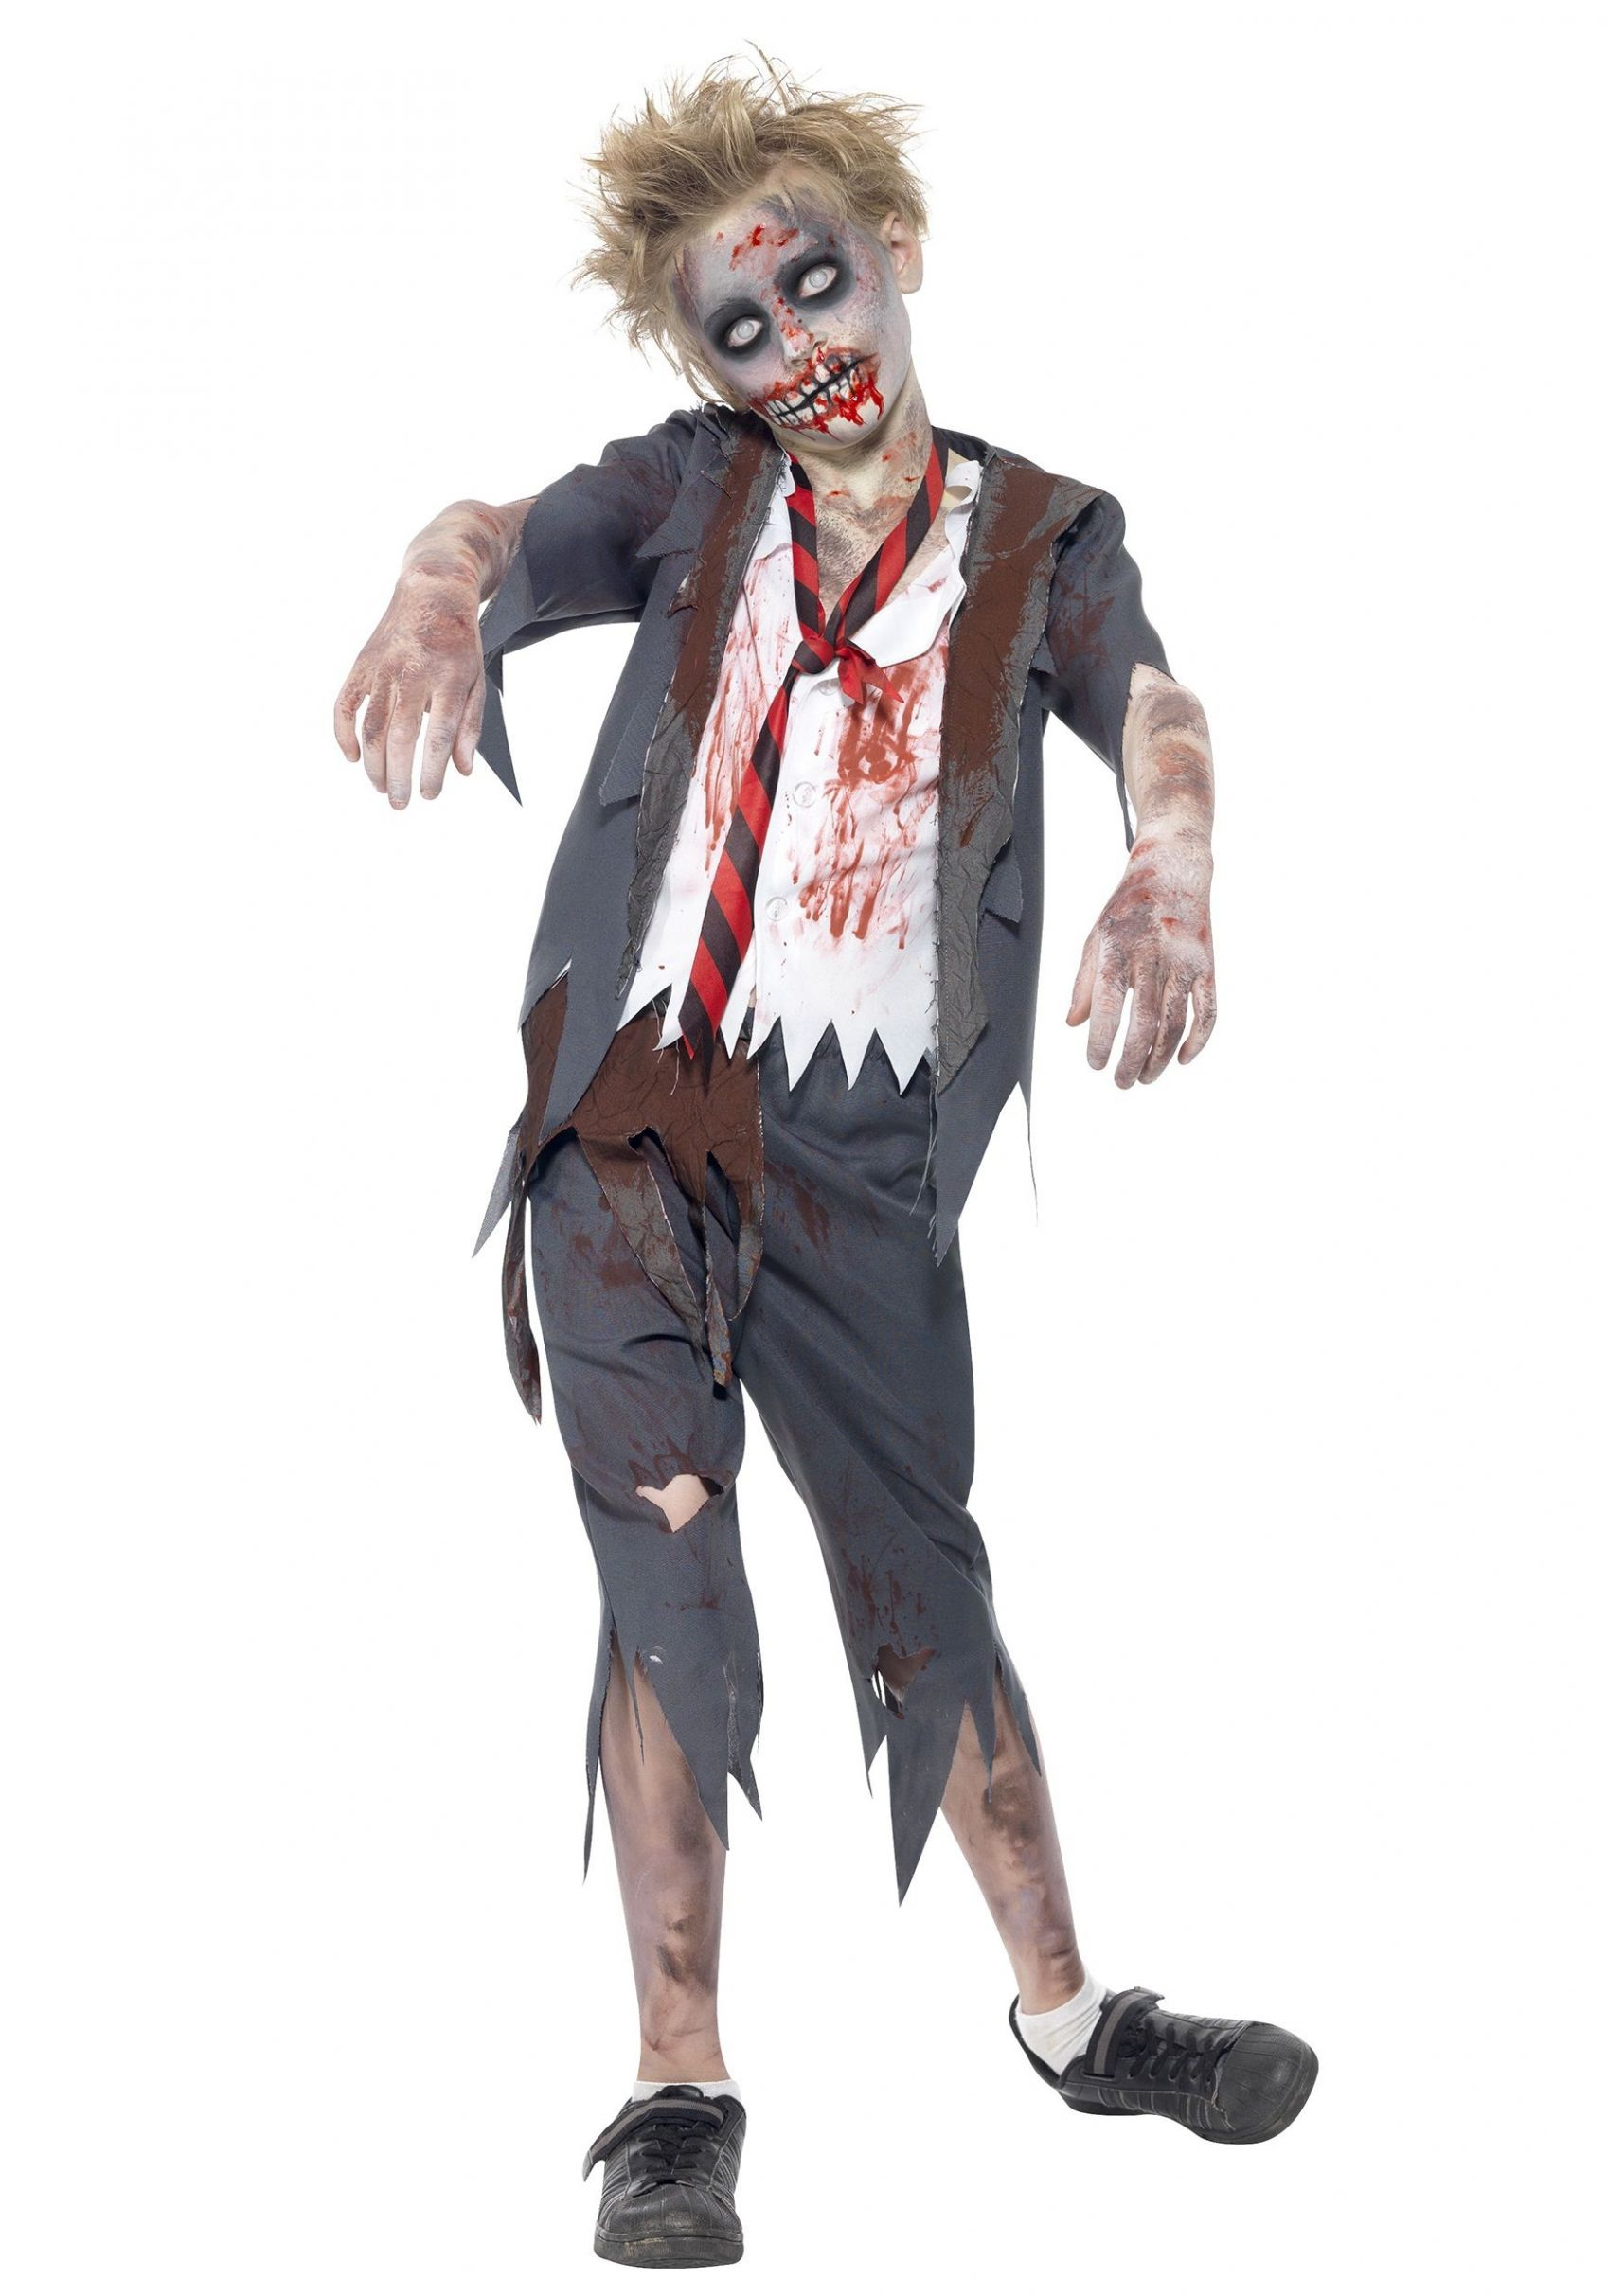 Zombie School Boy Costume | Zombie halloween costumes, Kids zombie ..